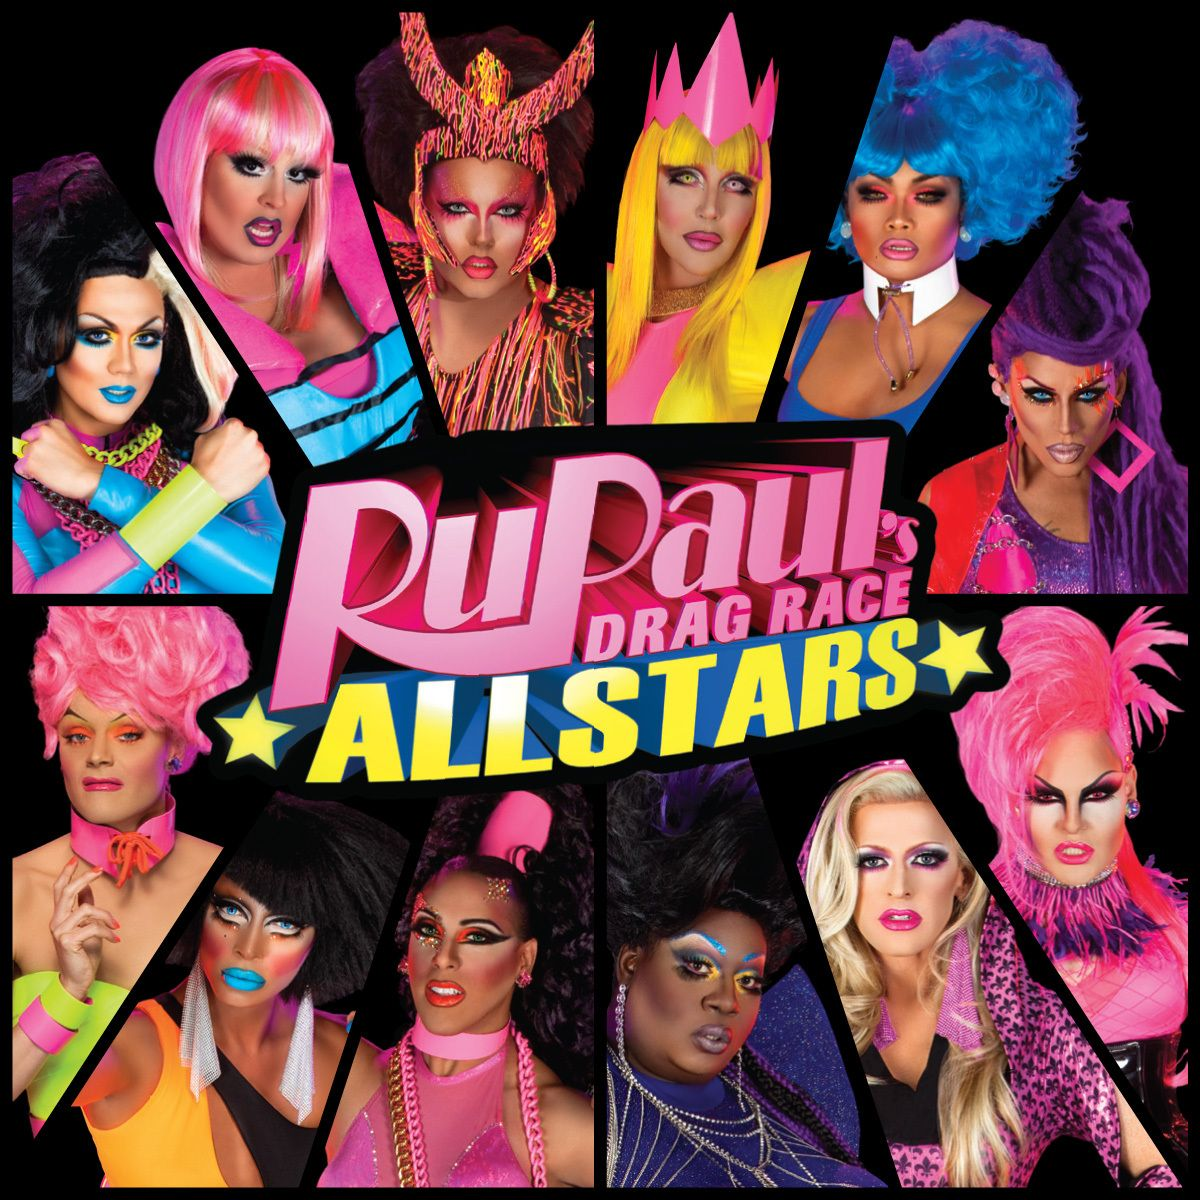 Pictures Photos From Rupaul S Drag Race Tv Series 2009 Rupaul All Stars Rupaul Rupauls Drag Race